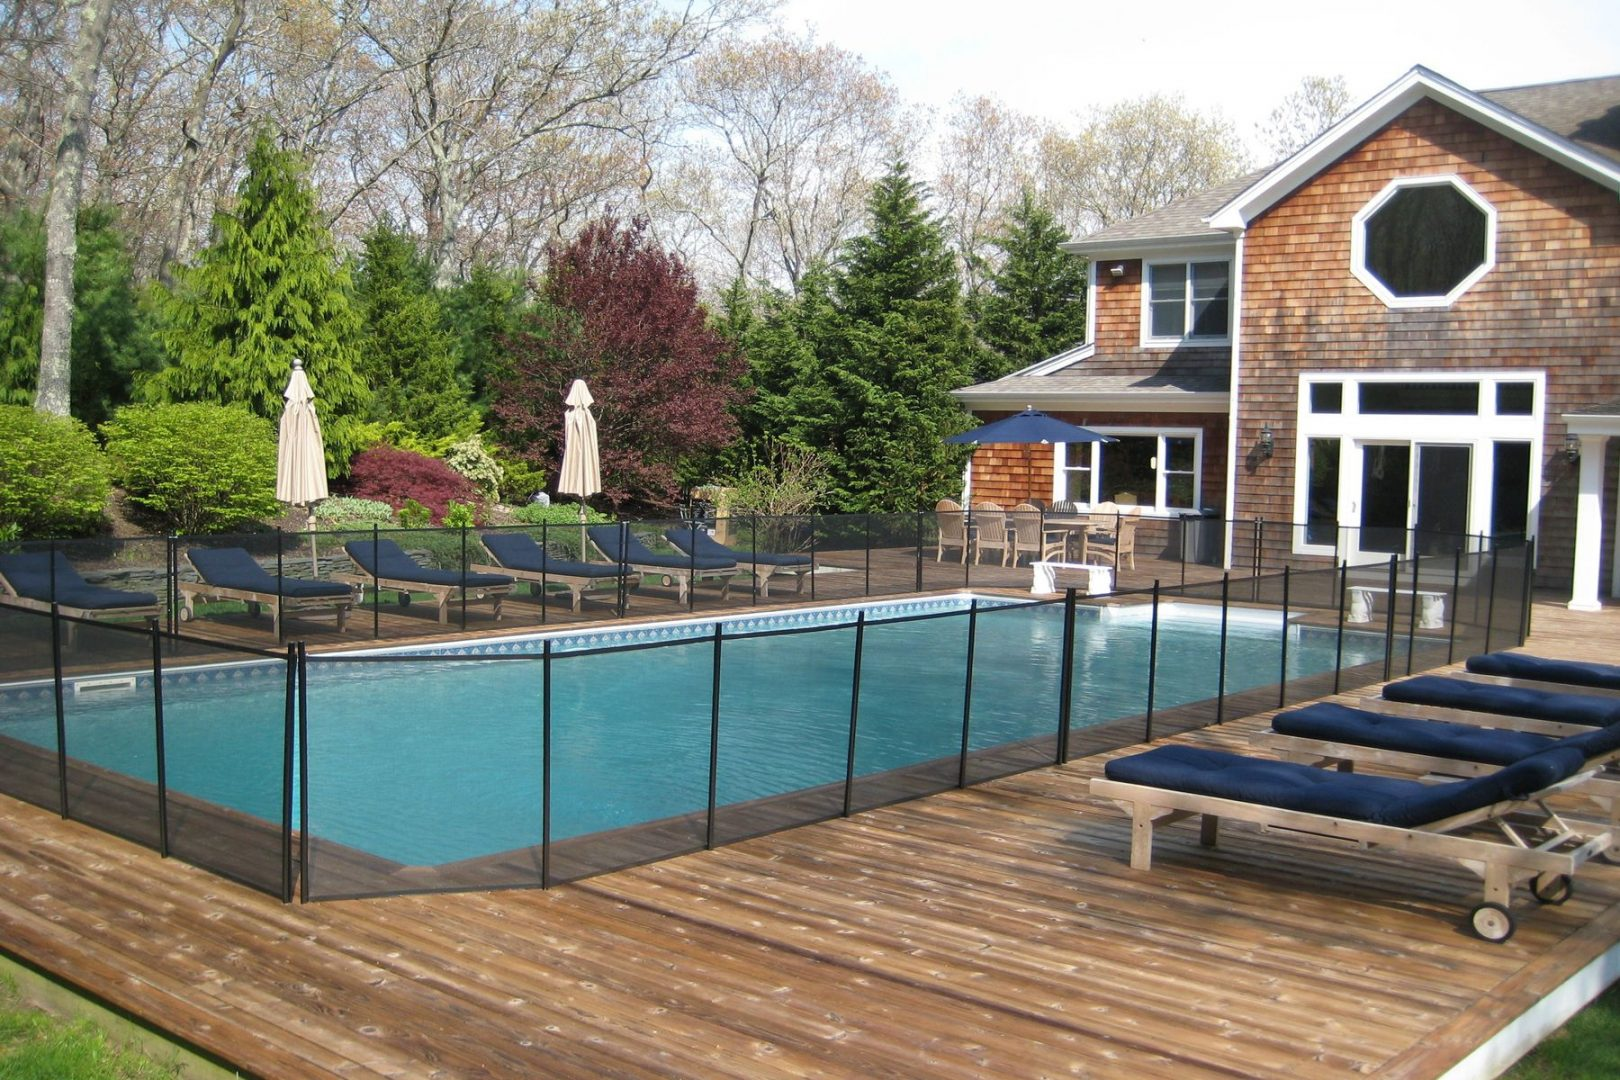 Saltwater pool with optional safety fencing, and deck close up.